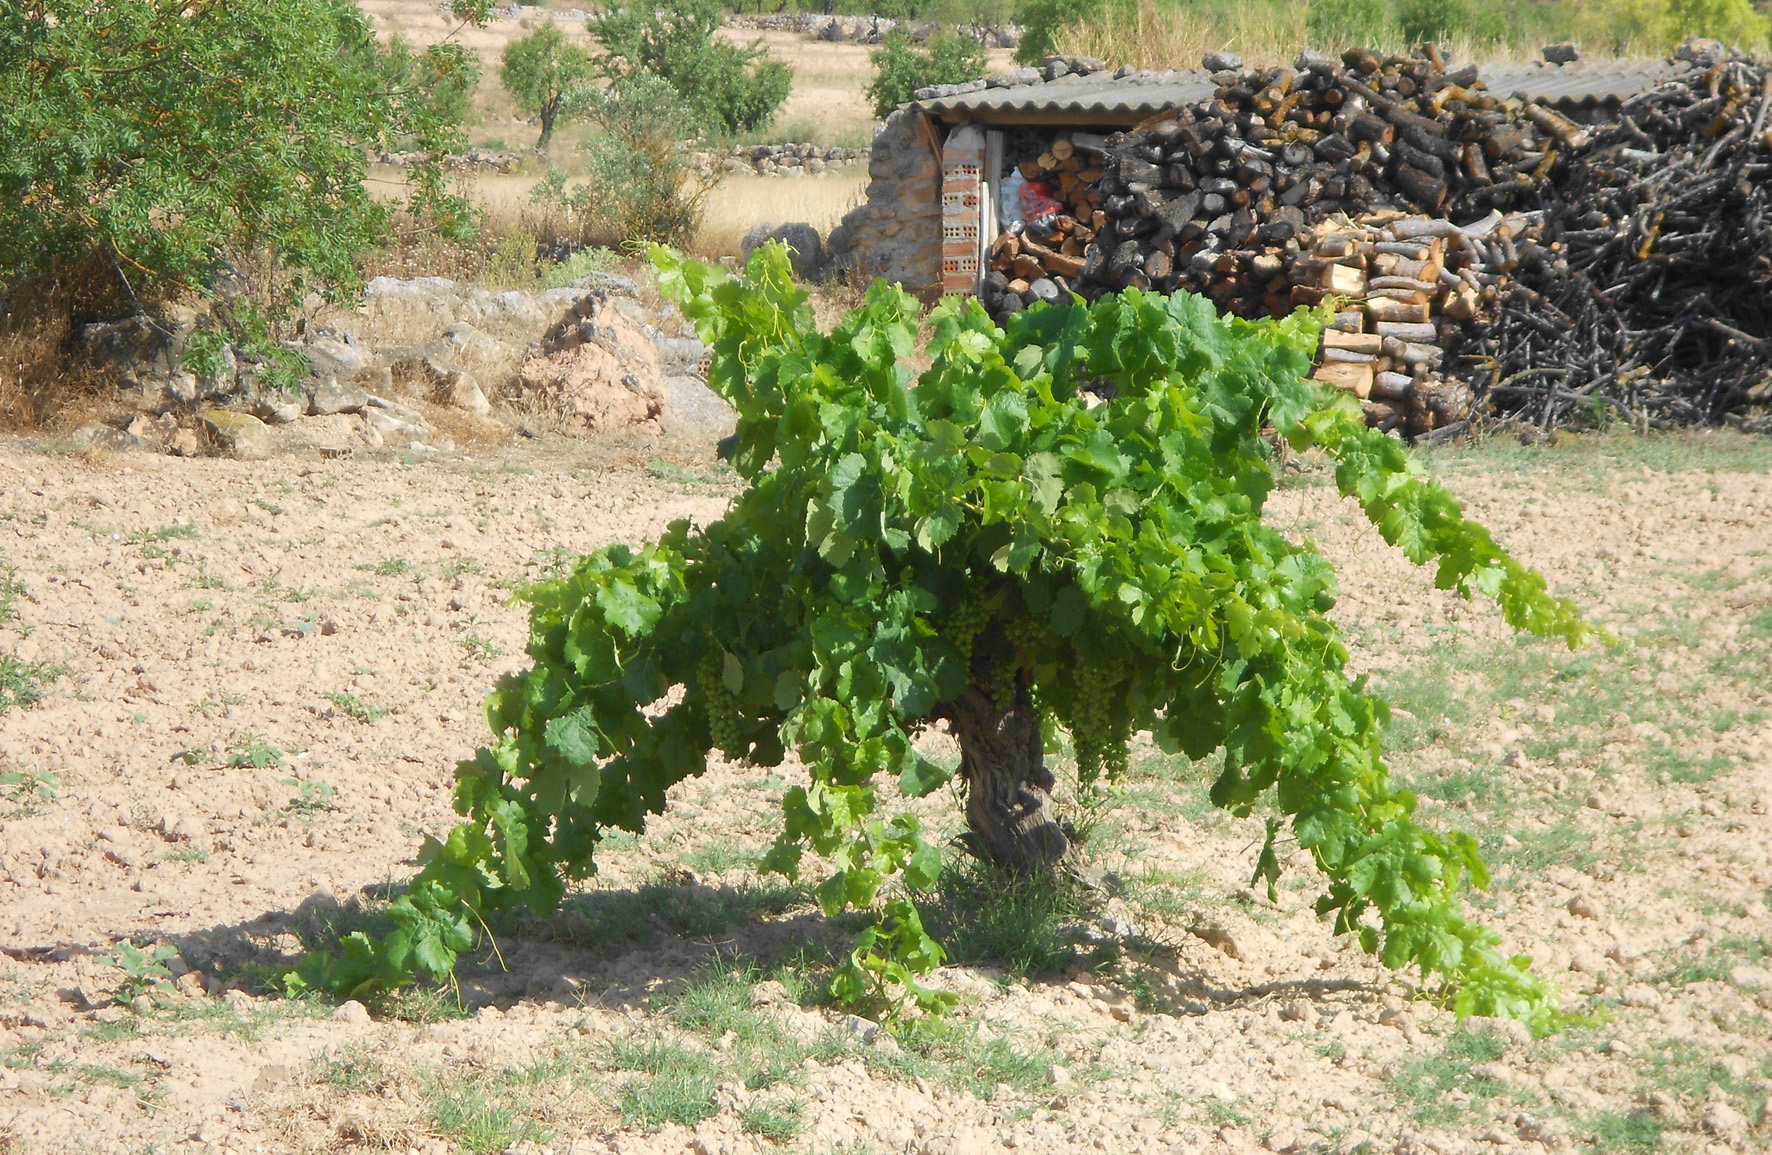 grapevine at the Pou del Mano, Bovera